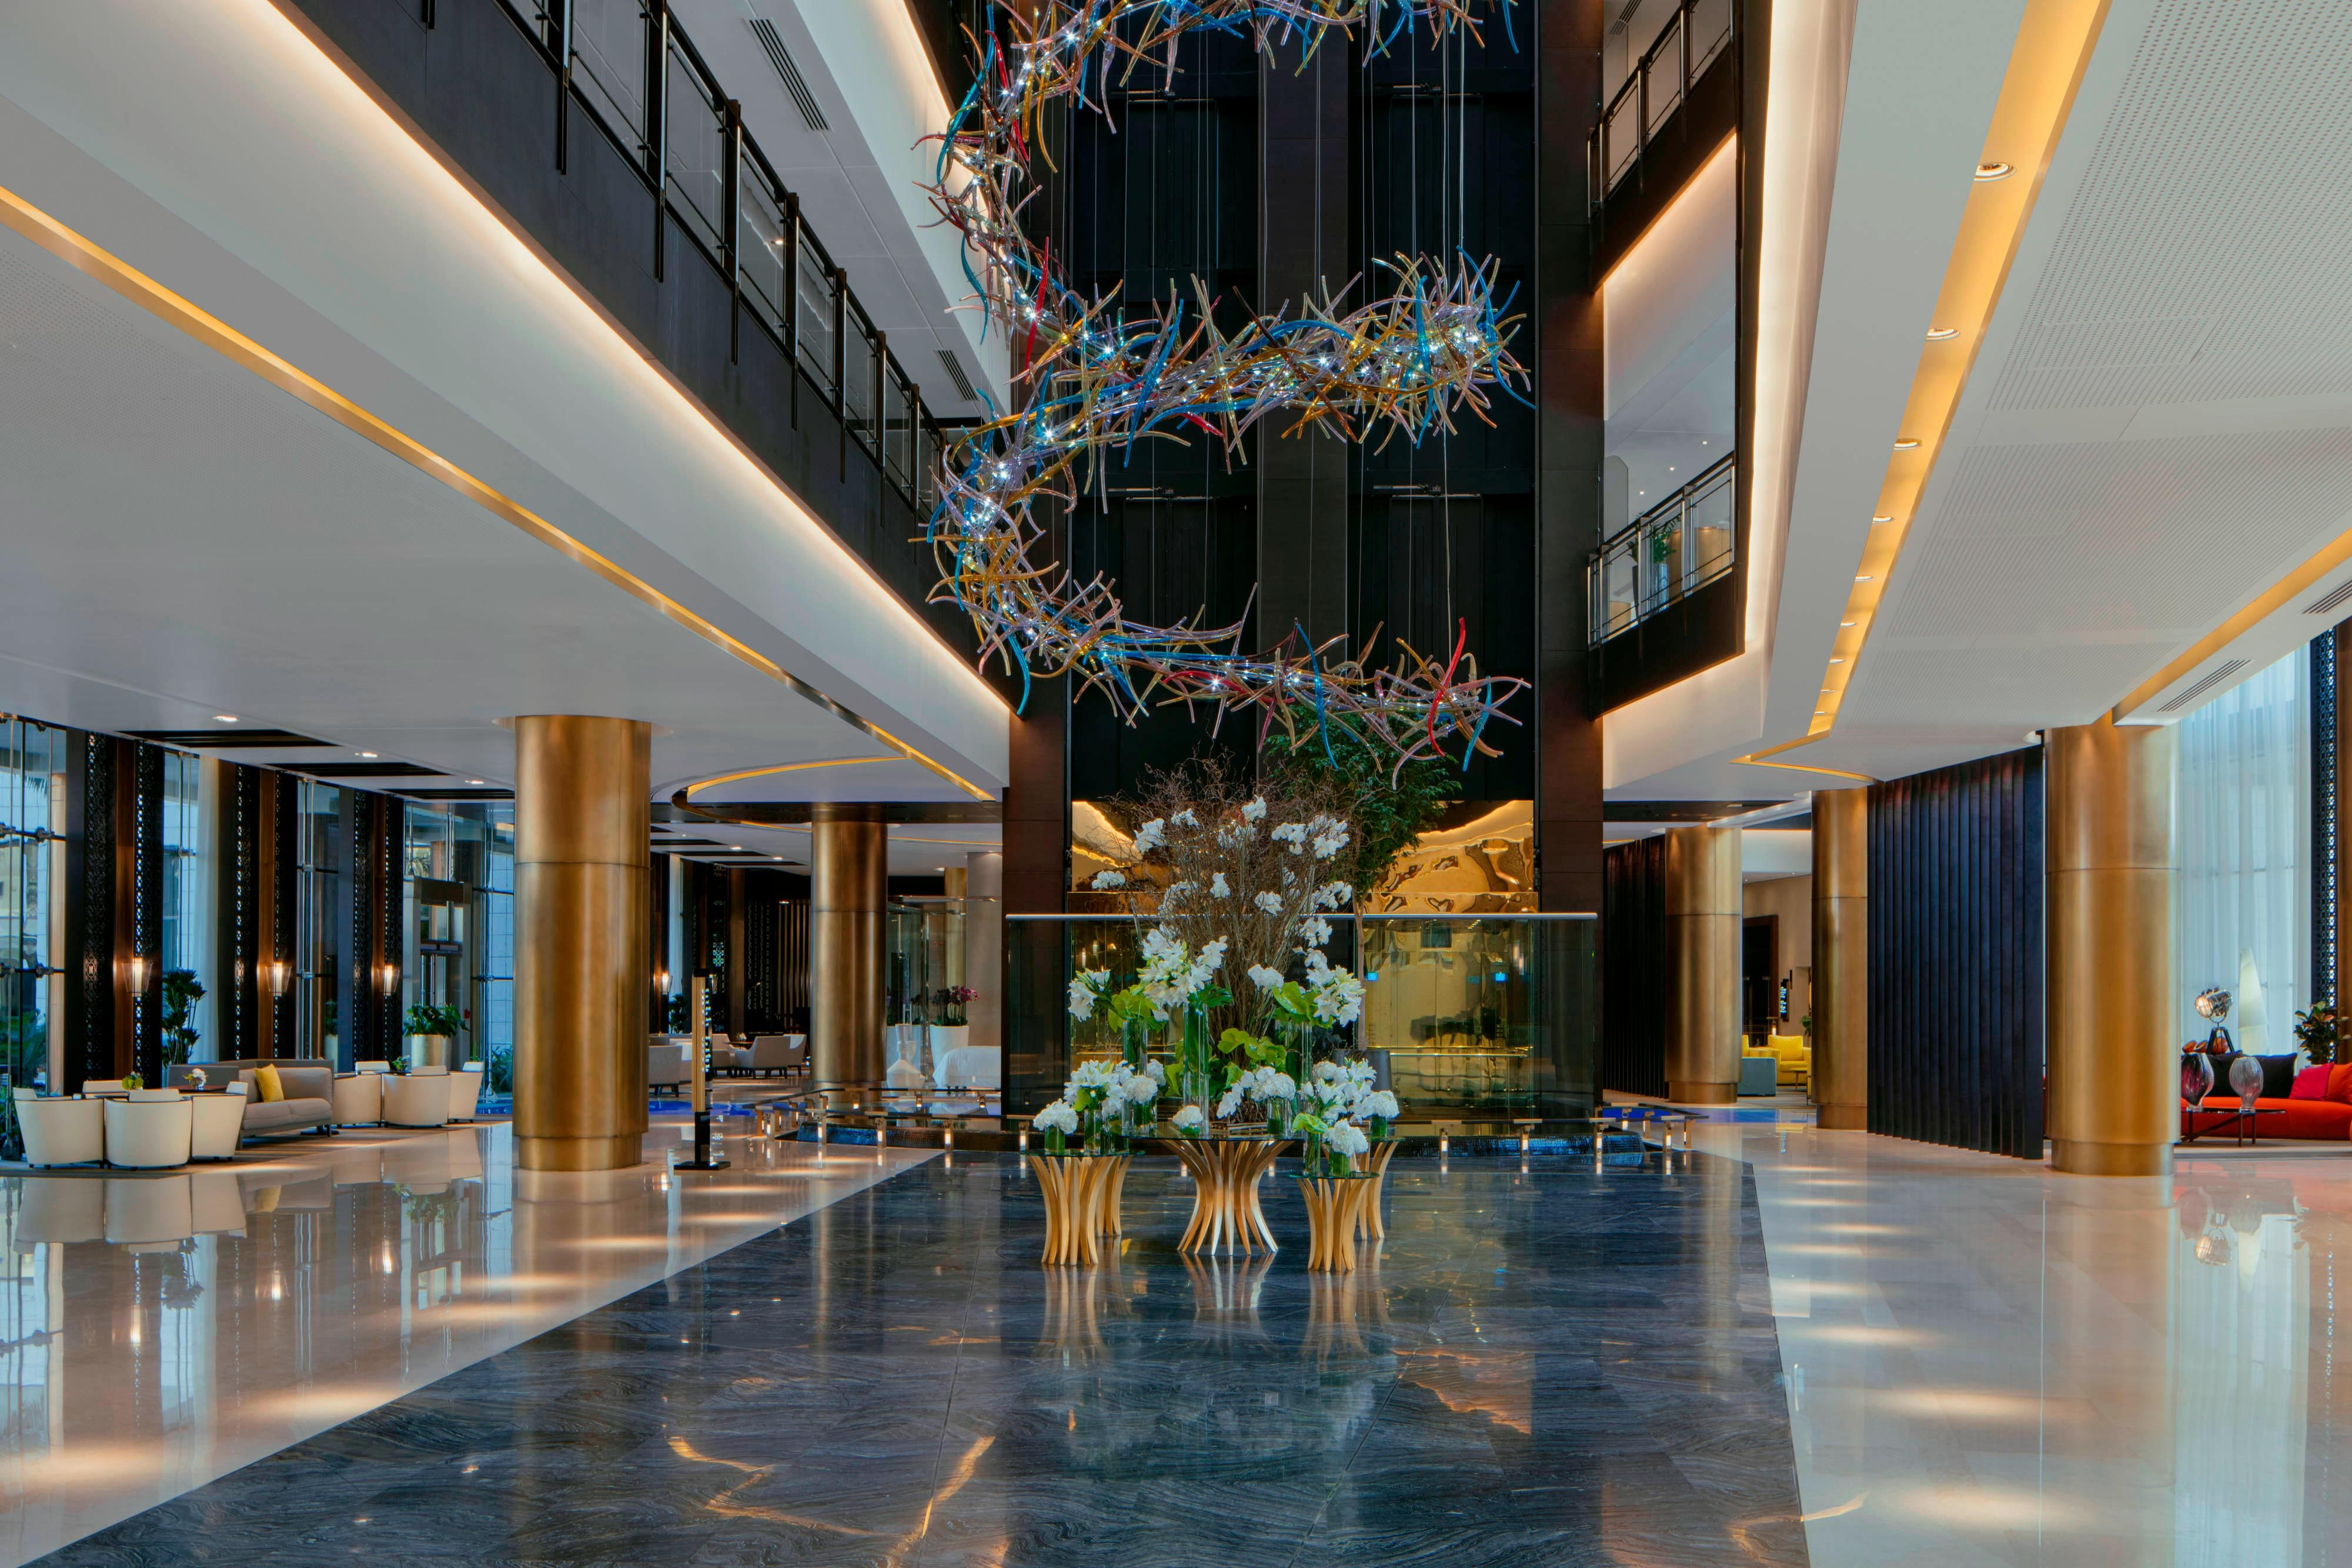 As you step into the lobby of the Westin Doha, enjoy the serenity and calm of the large open space, fresh blooms and signature Westin scent.